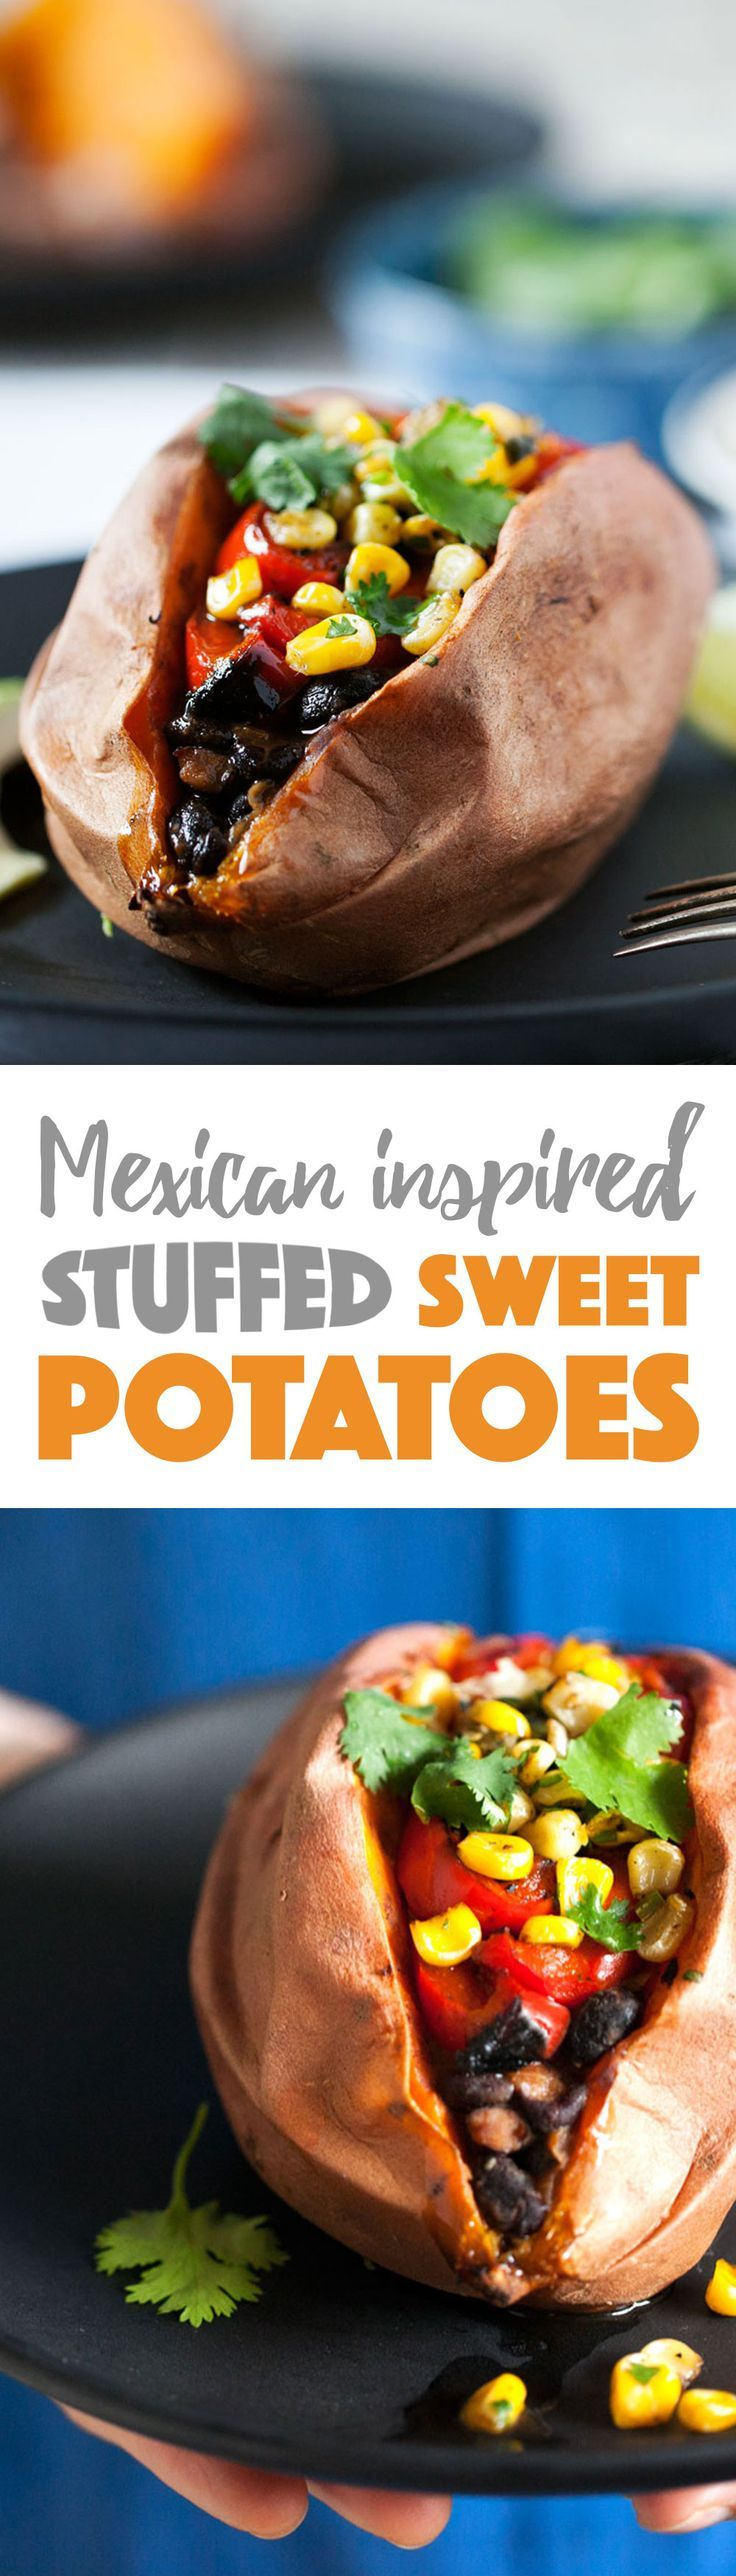 A healthier take on a baked potato! Perfectly baked sweet potato stuffed with Mexican-inspired fixings. Vegan & Gluten Free.